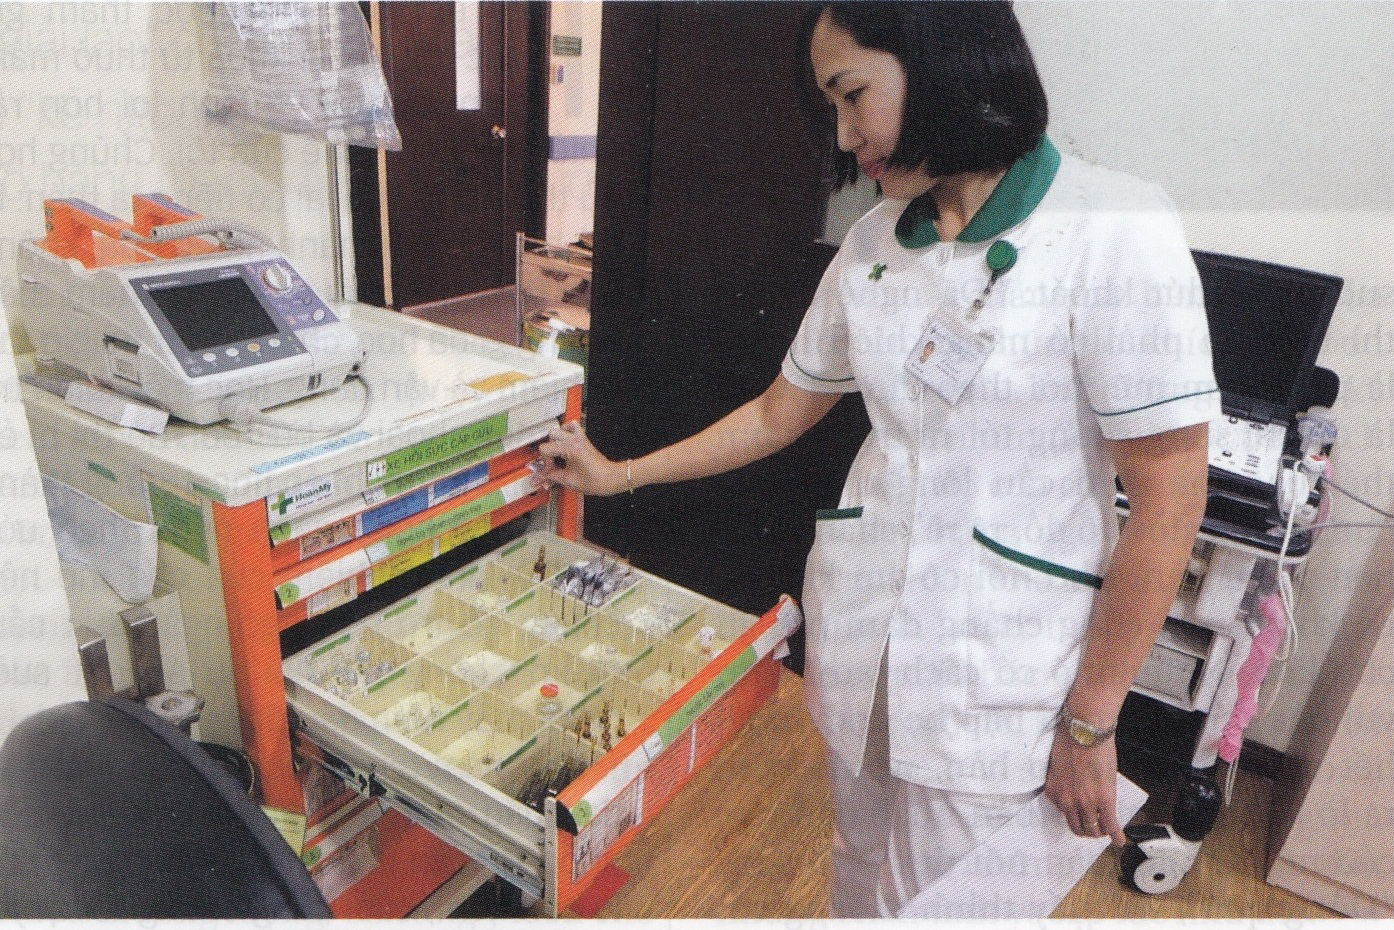 Vietnam offices, hospitals adopt Japanese model for optimal efficiency